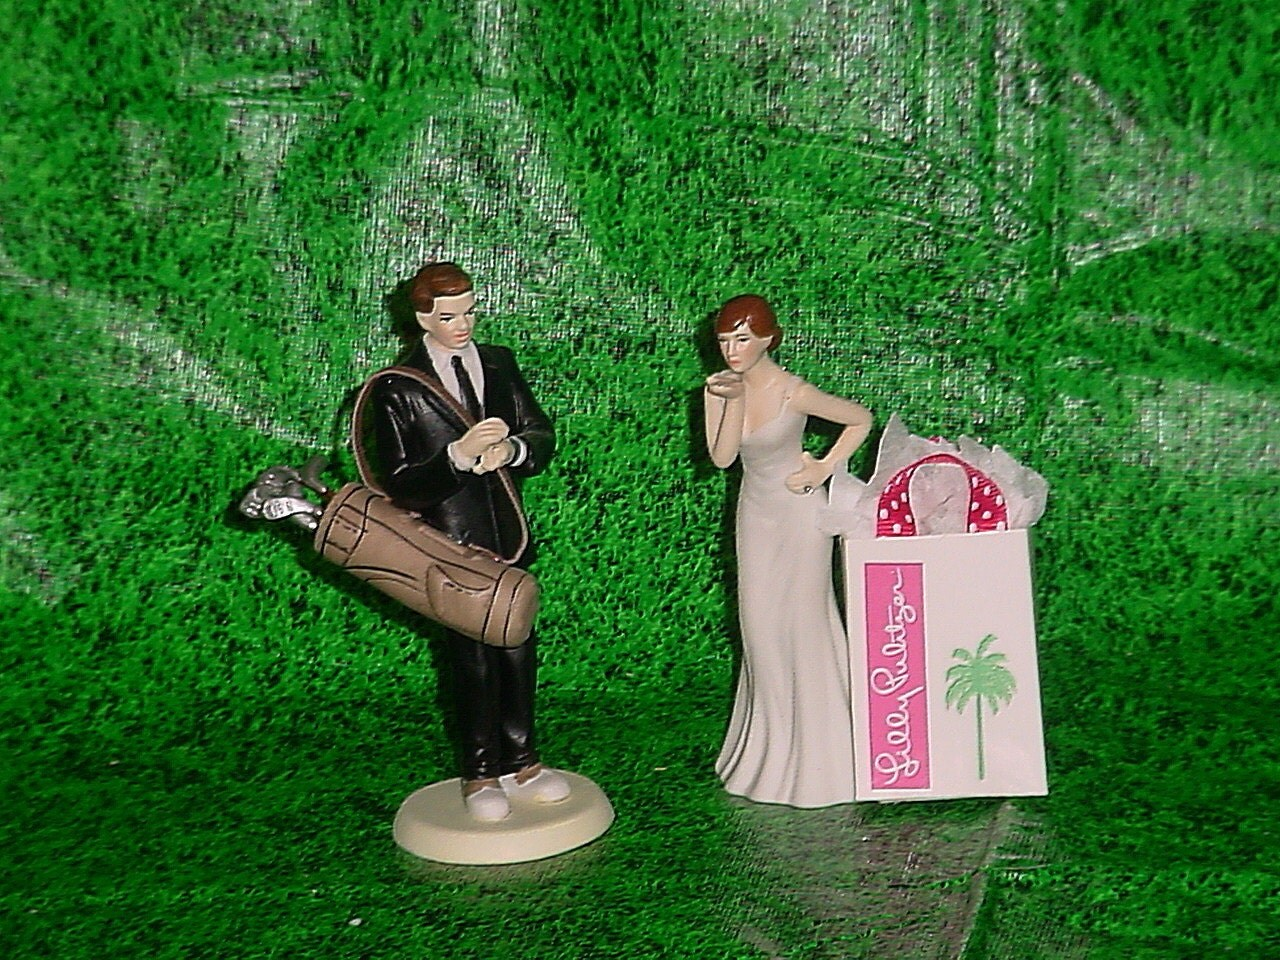 golf wedding cake toppers ireland golf lover groom and blowing kisses with weddings 14851